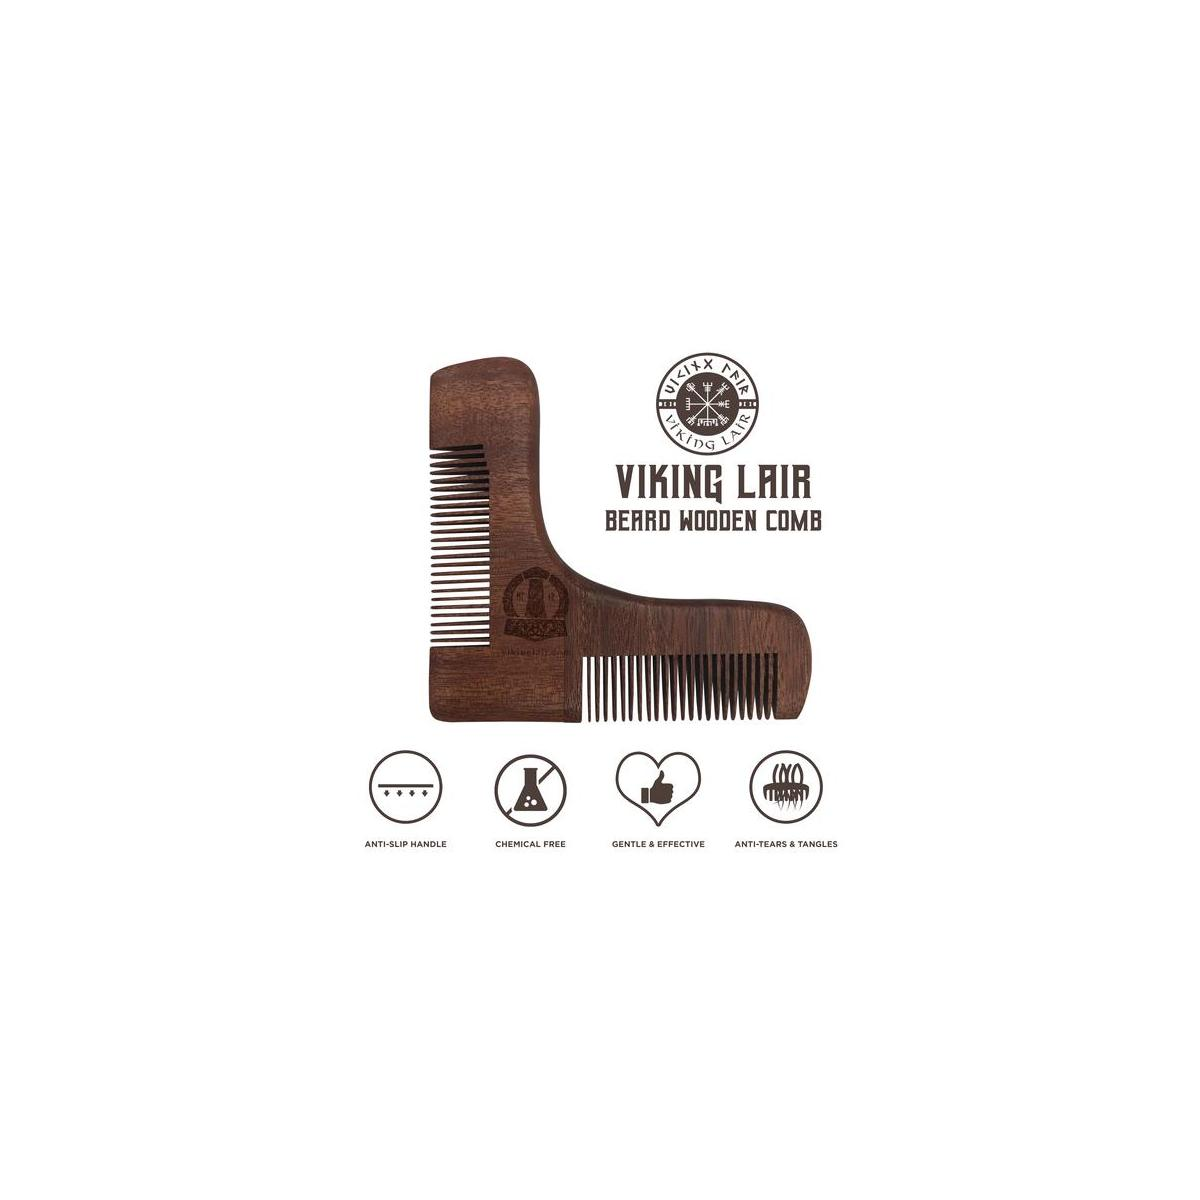 Viking Lair Wooden Beard Comb - Mustache Grooming & Styling Comb with Anti-Slip Handle - Chemical Free Wood - Gentle & Effective Beard Trimming Comb - Easy Grasp Handle - Anti-tears & Tangles